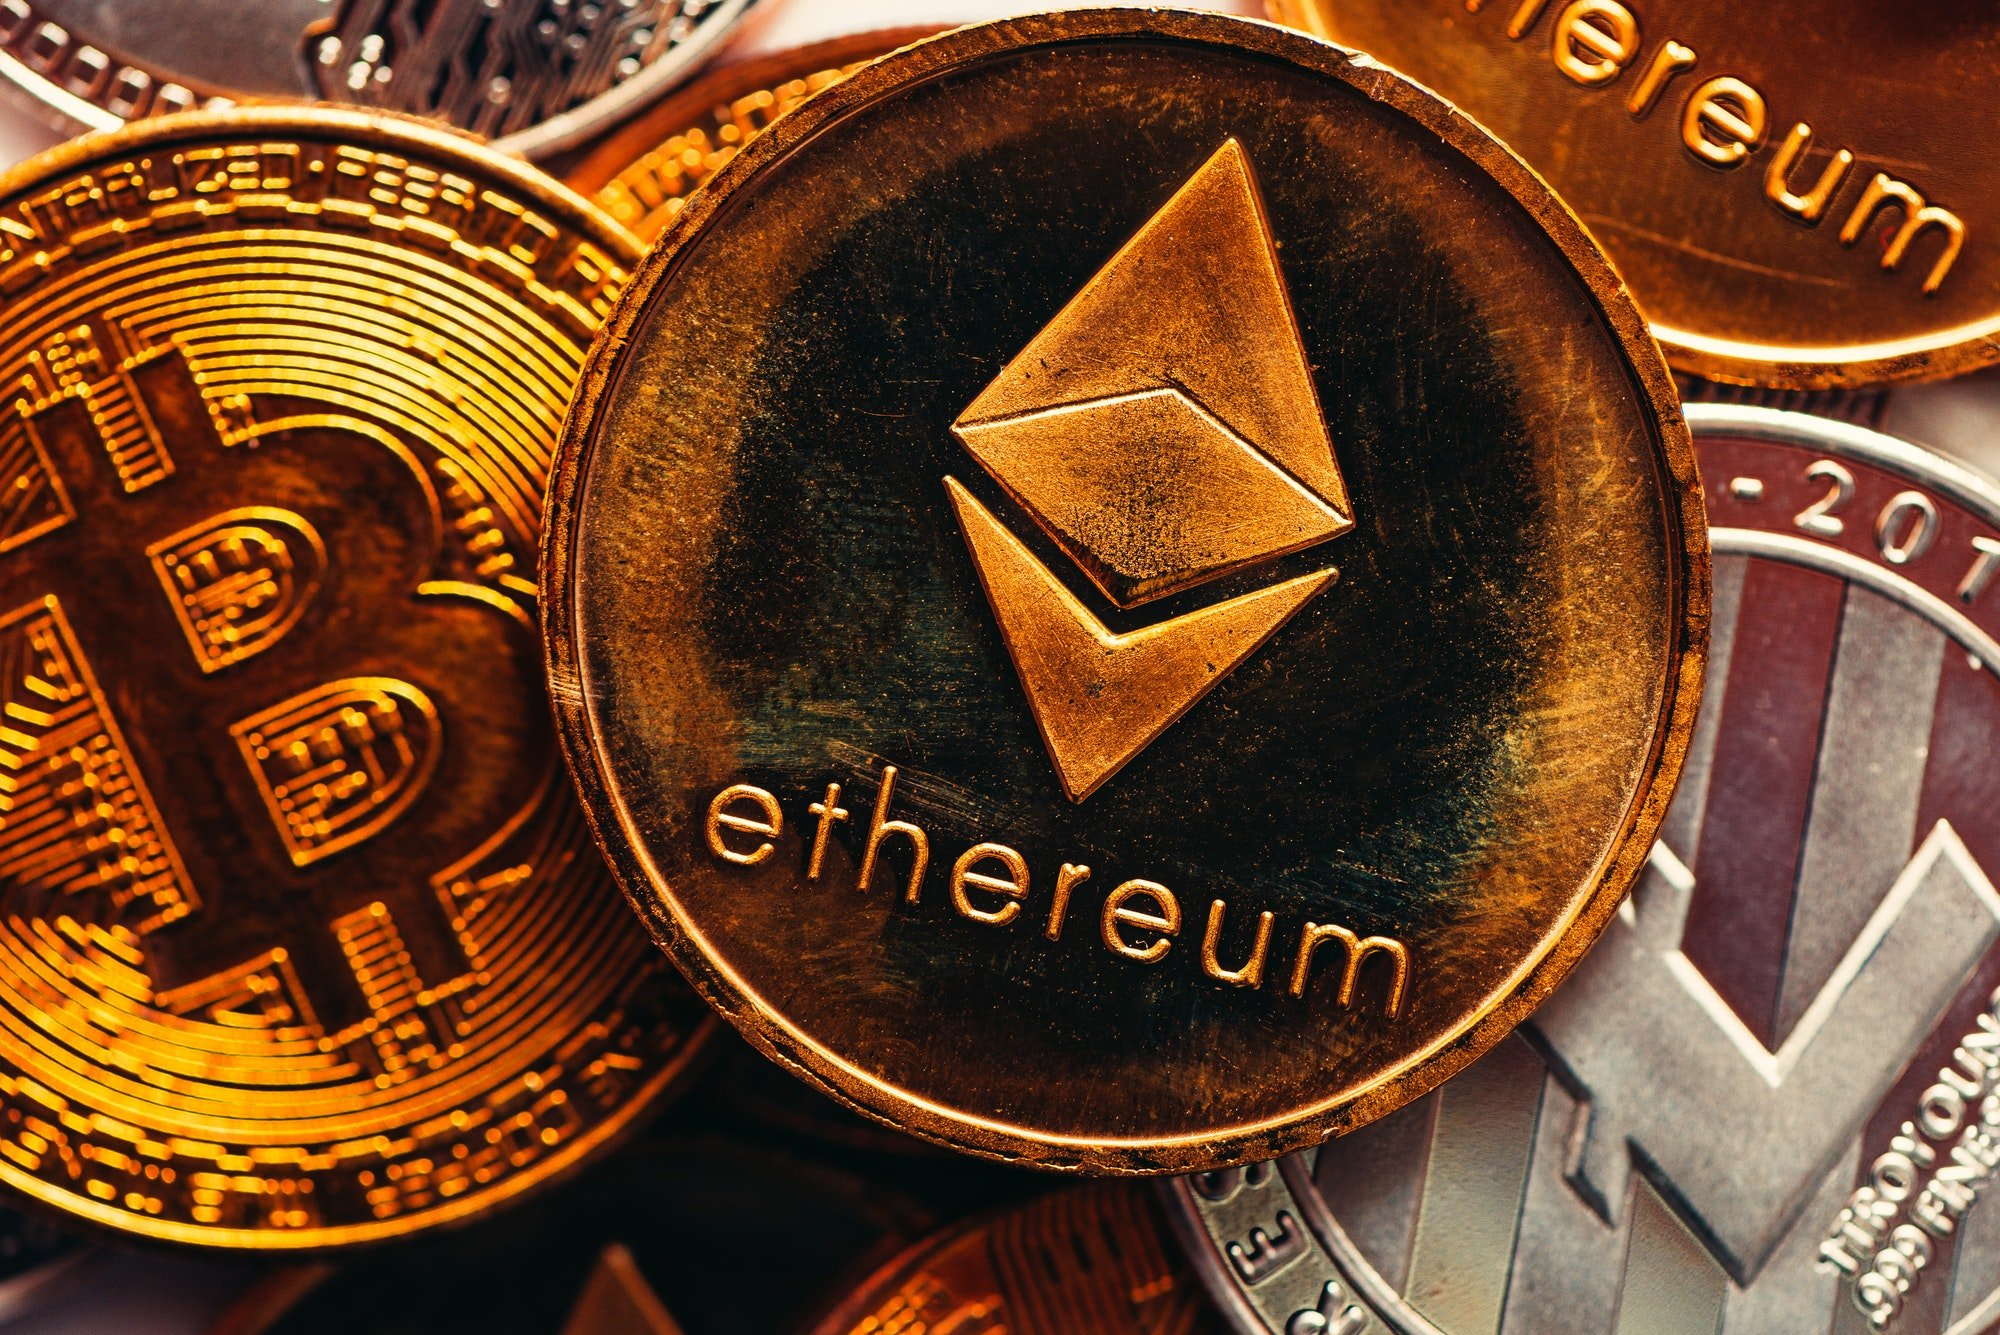 What Is a Better Investment: Bitcoin or Ethereum?